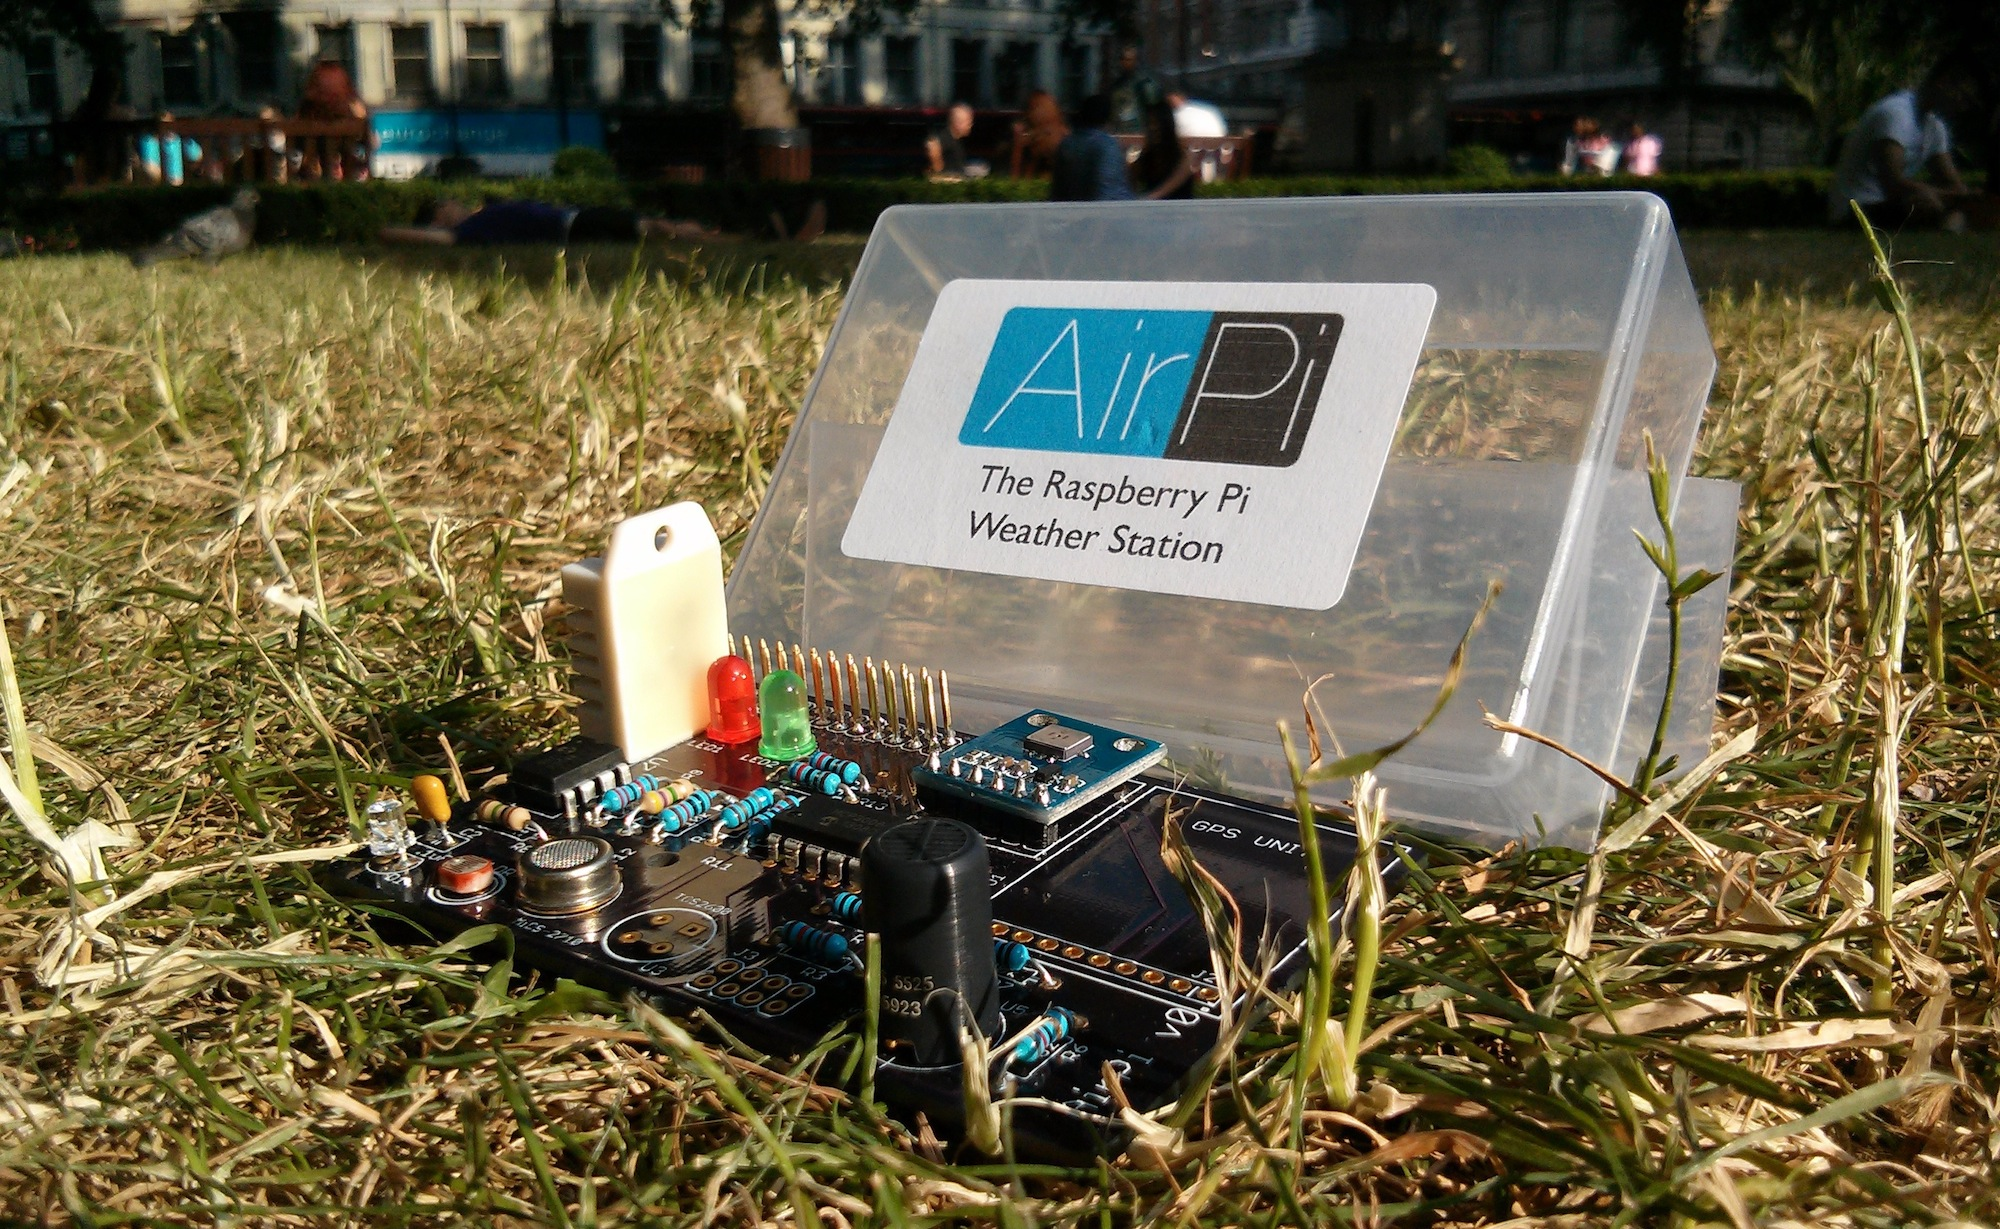 Airpi Air Quality Amp Weather Project